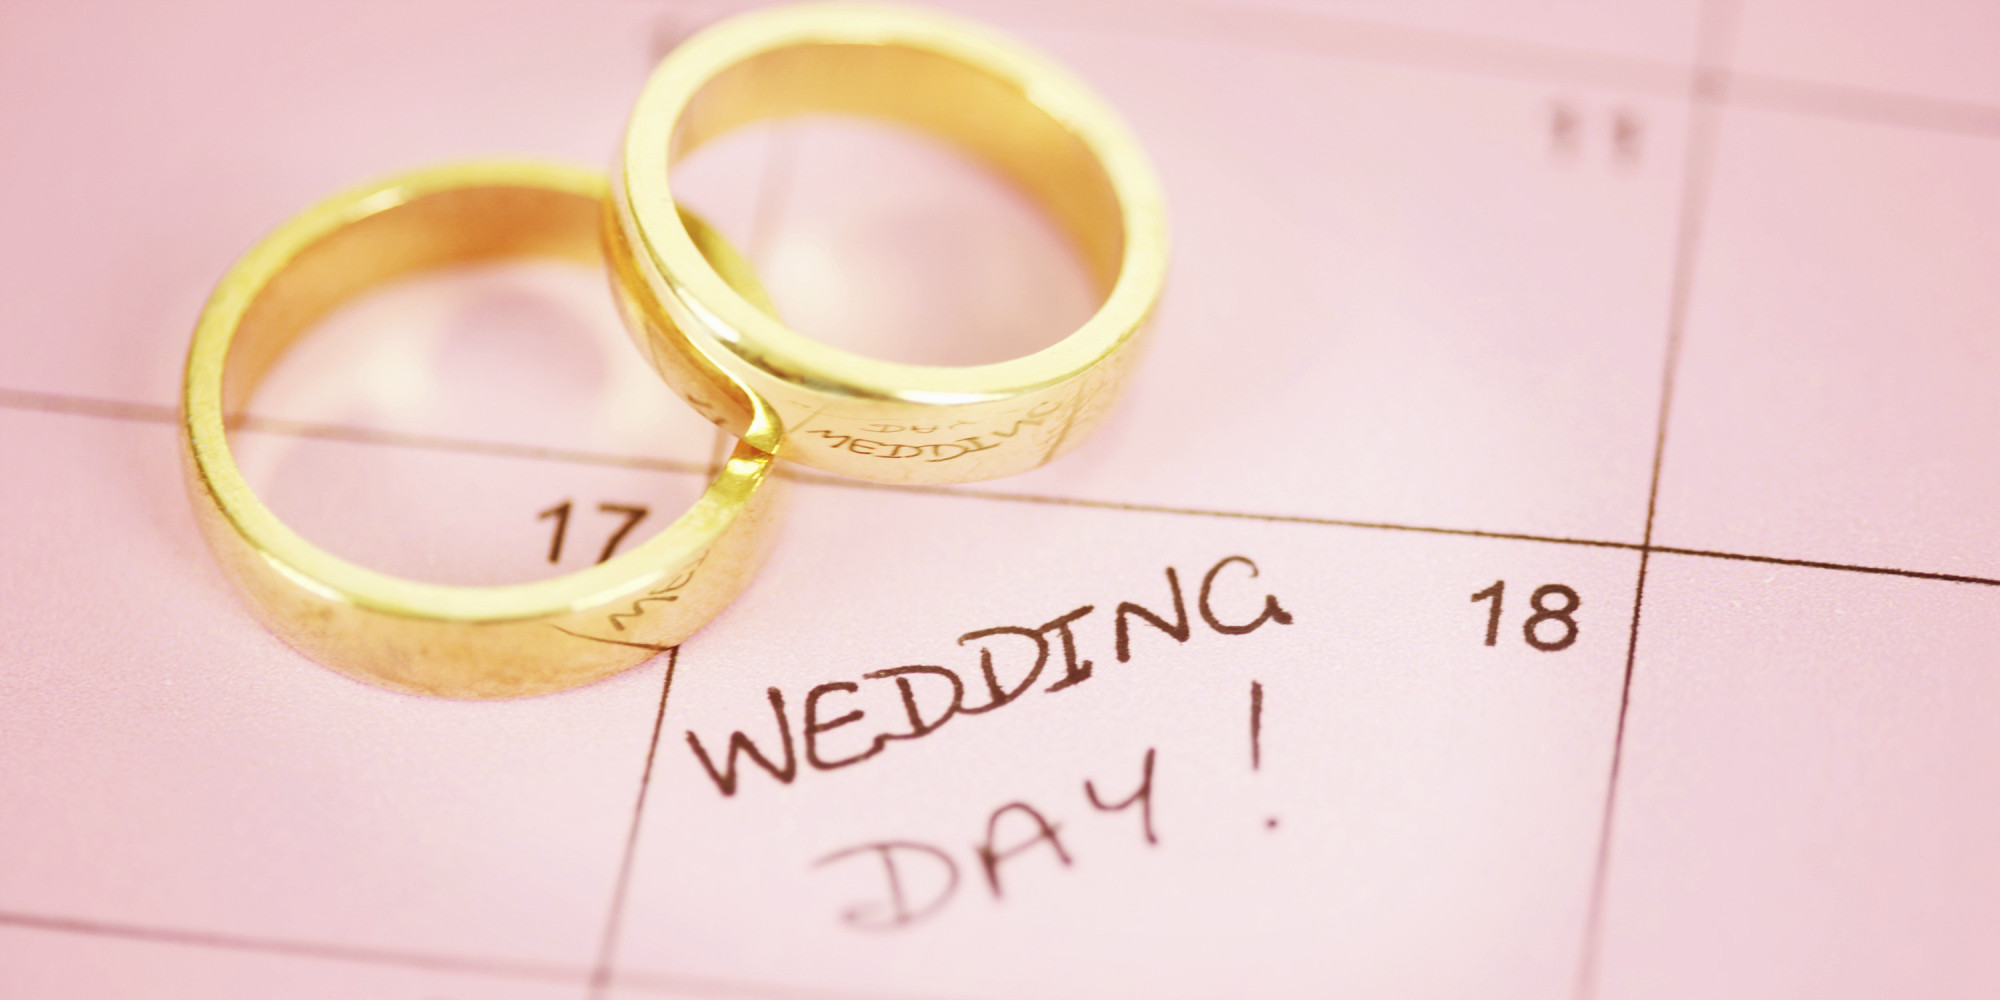 Various tips for wedding planning